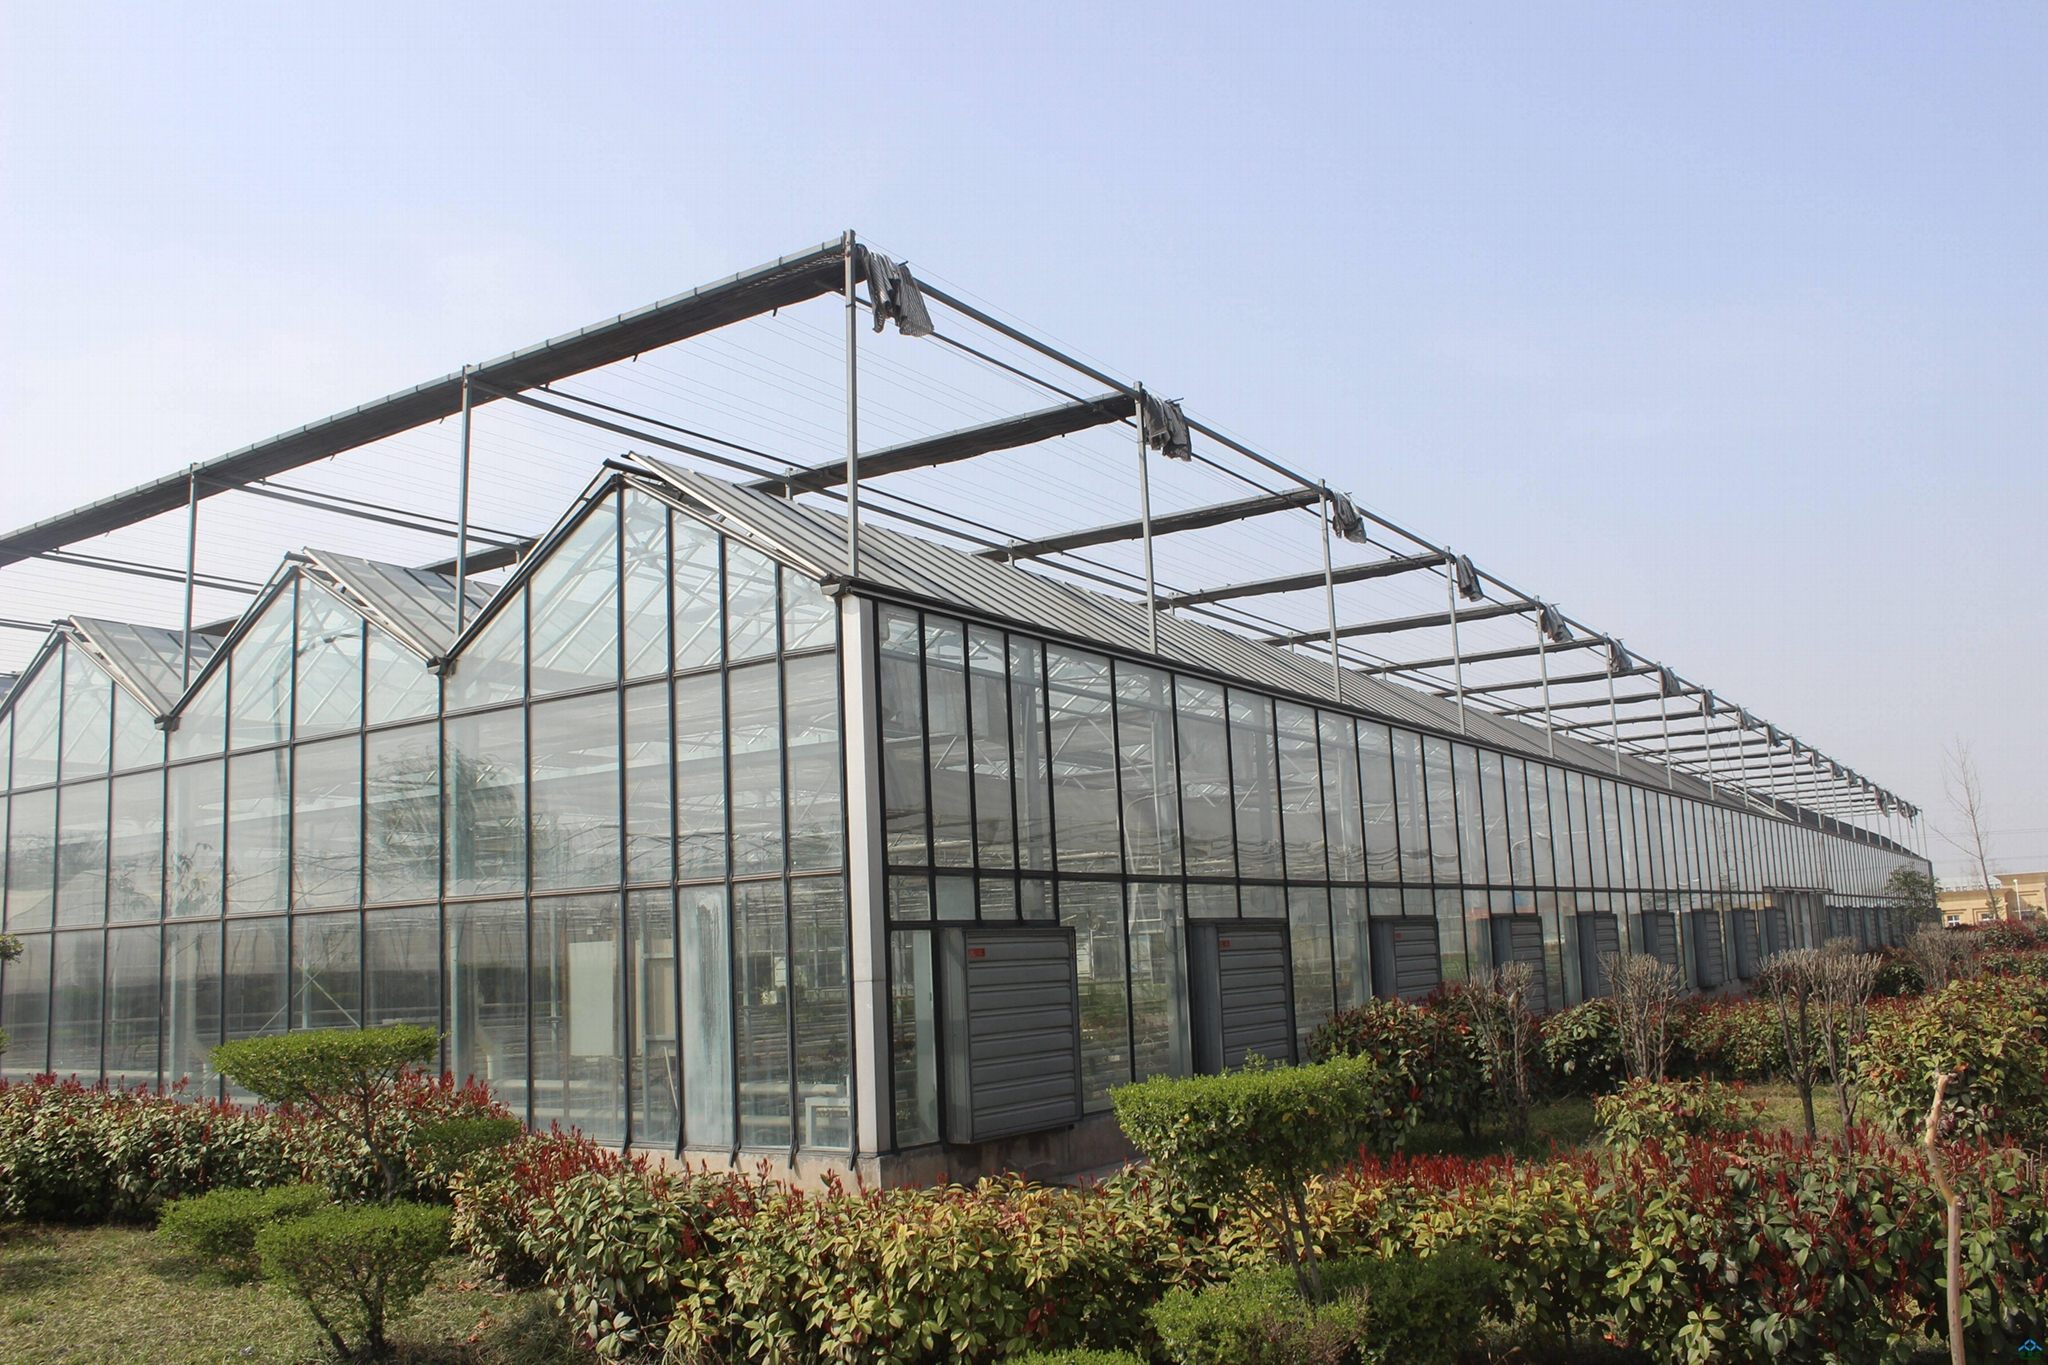 Industrial Hot Sale Ventilation Greenhouse Poultry Farm Wall Cooling Fan Exhaust 5